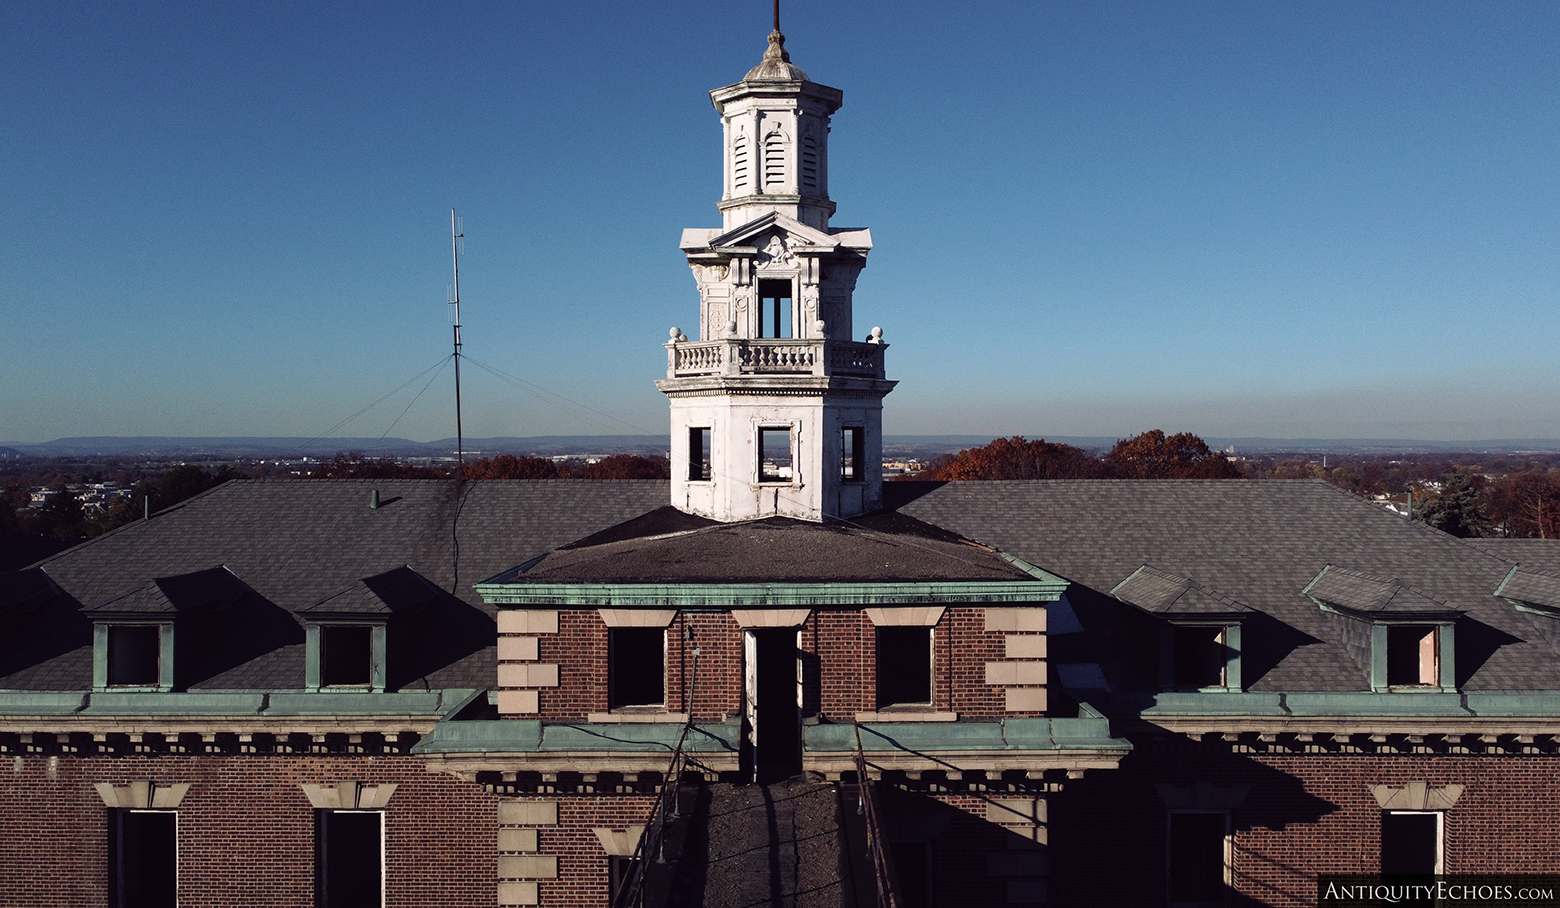 Allentown State Hospital - Rooftop and Spire